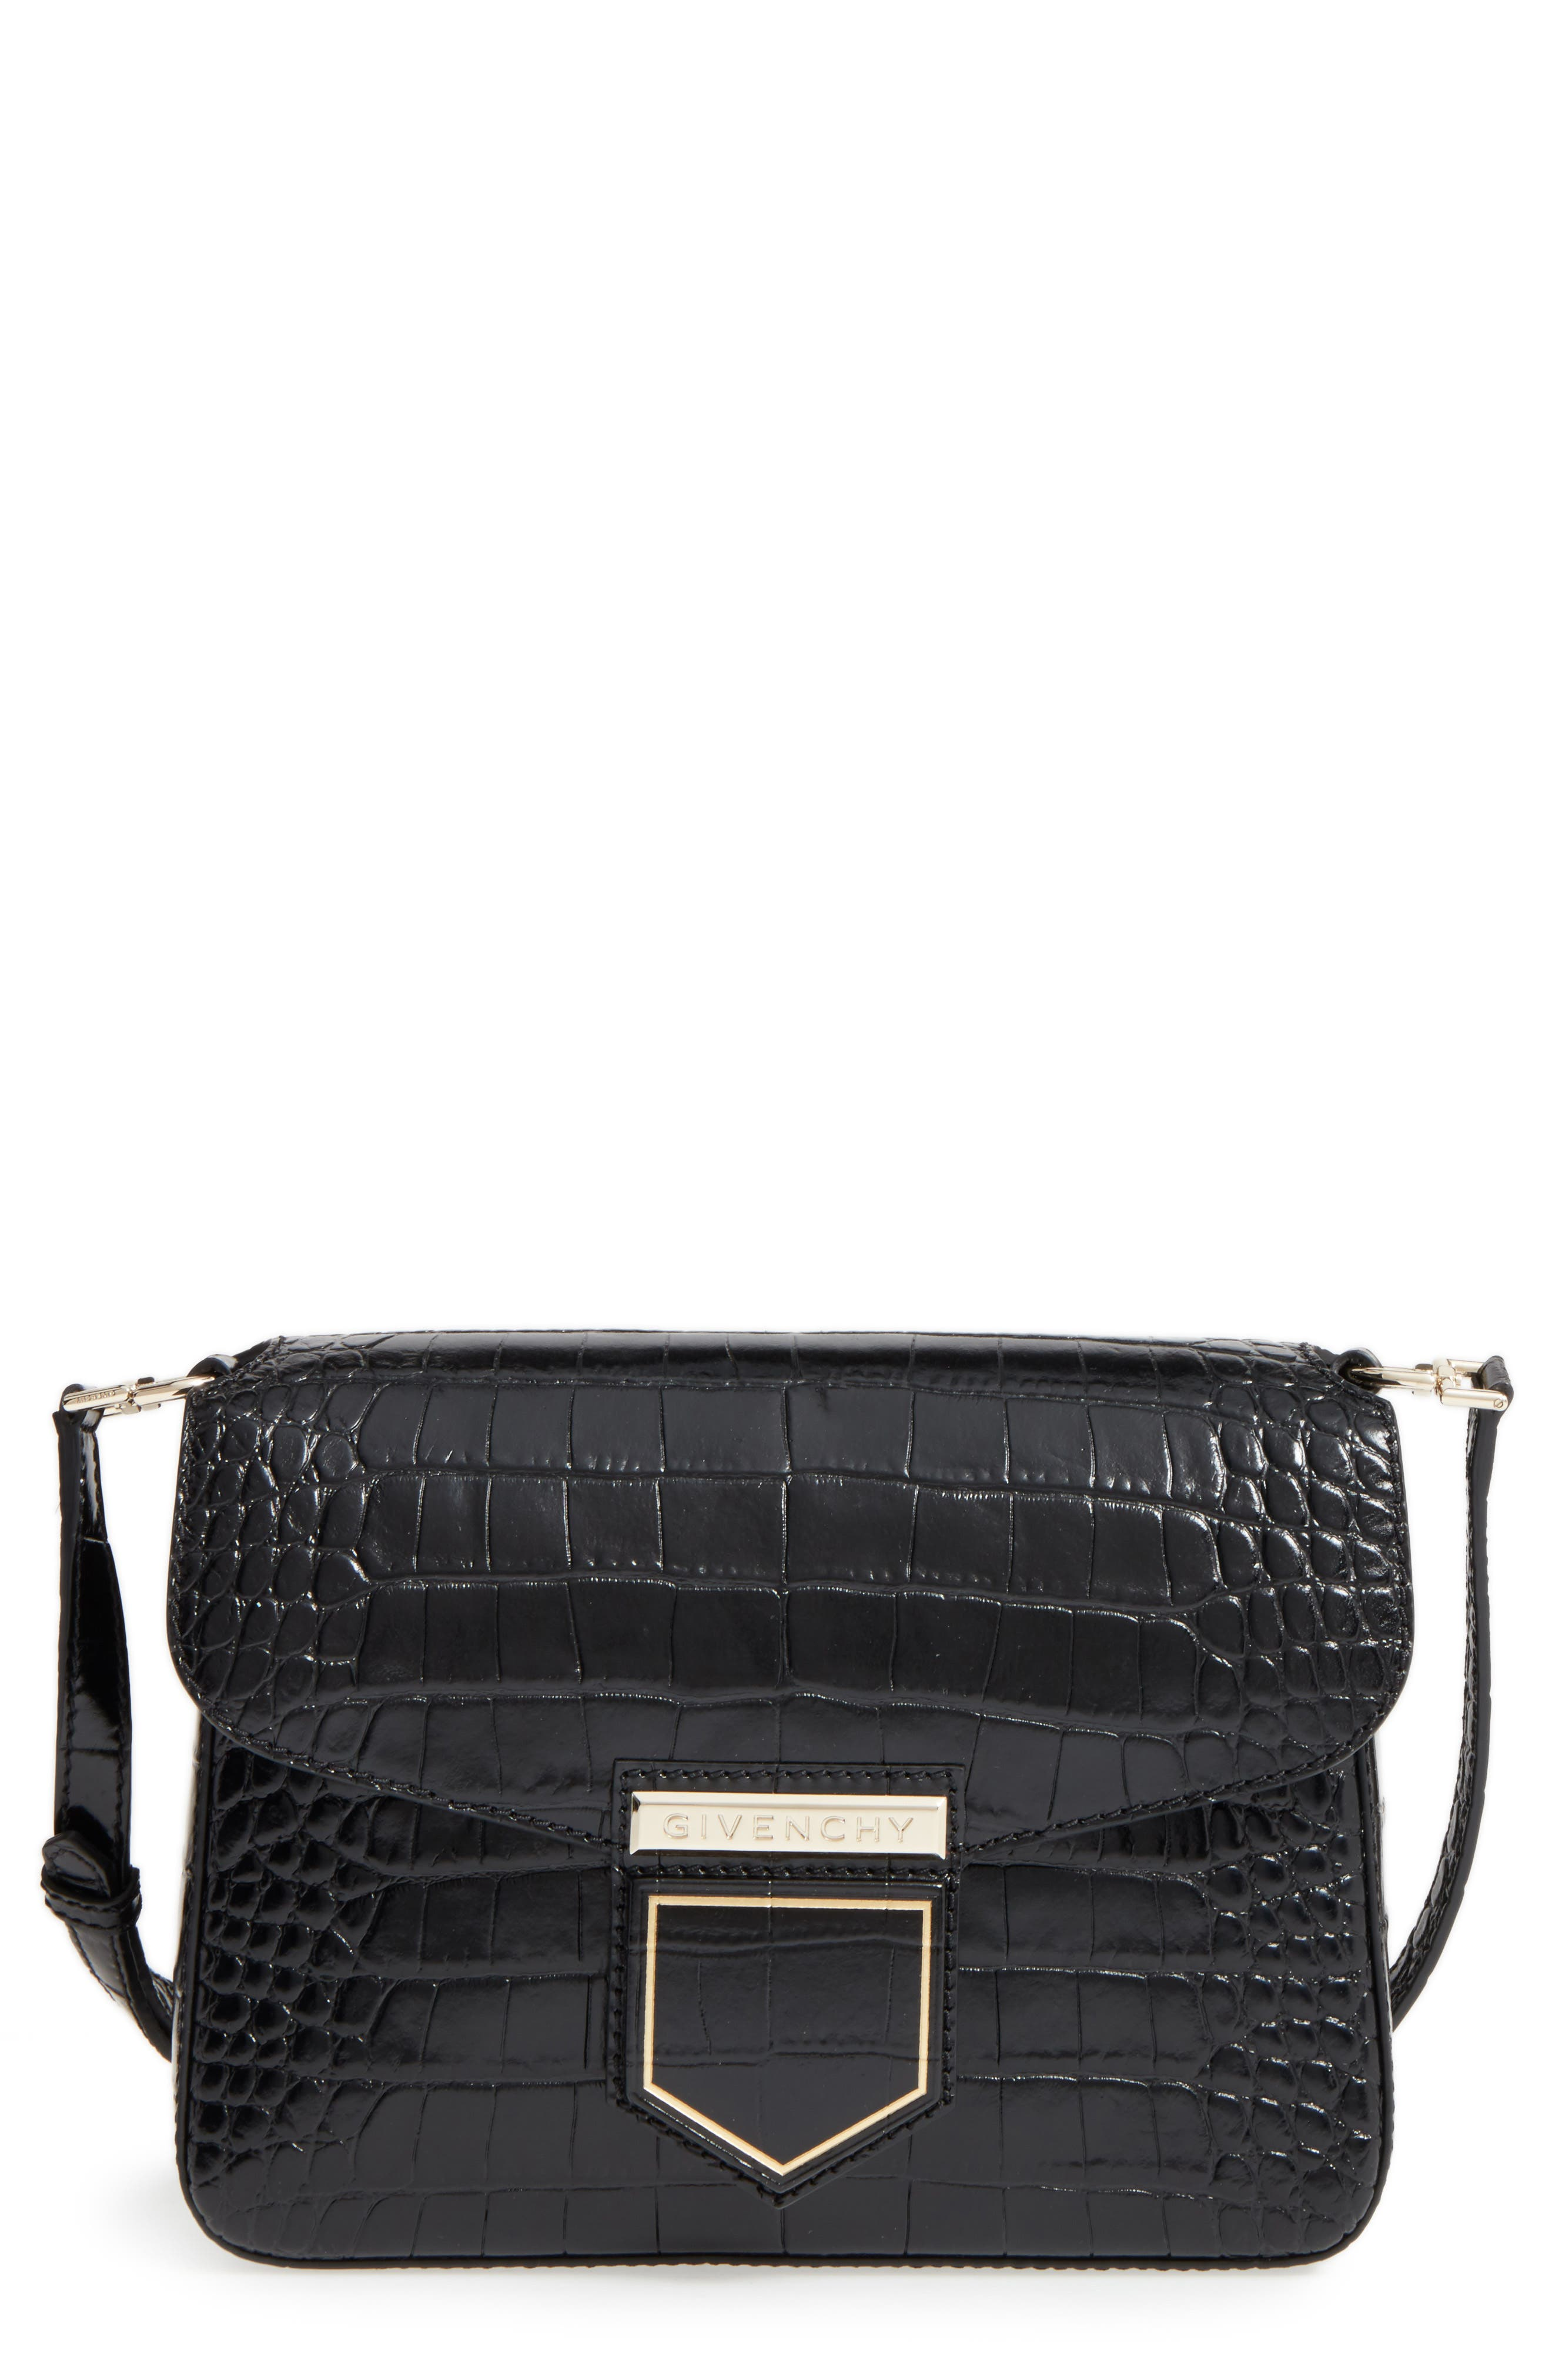 Alternate Image 1 Selected - Givenchy Small Nobile Croc Embossed Leather Crossbody Bag